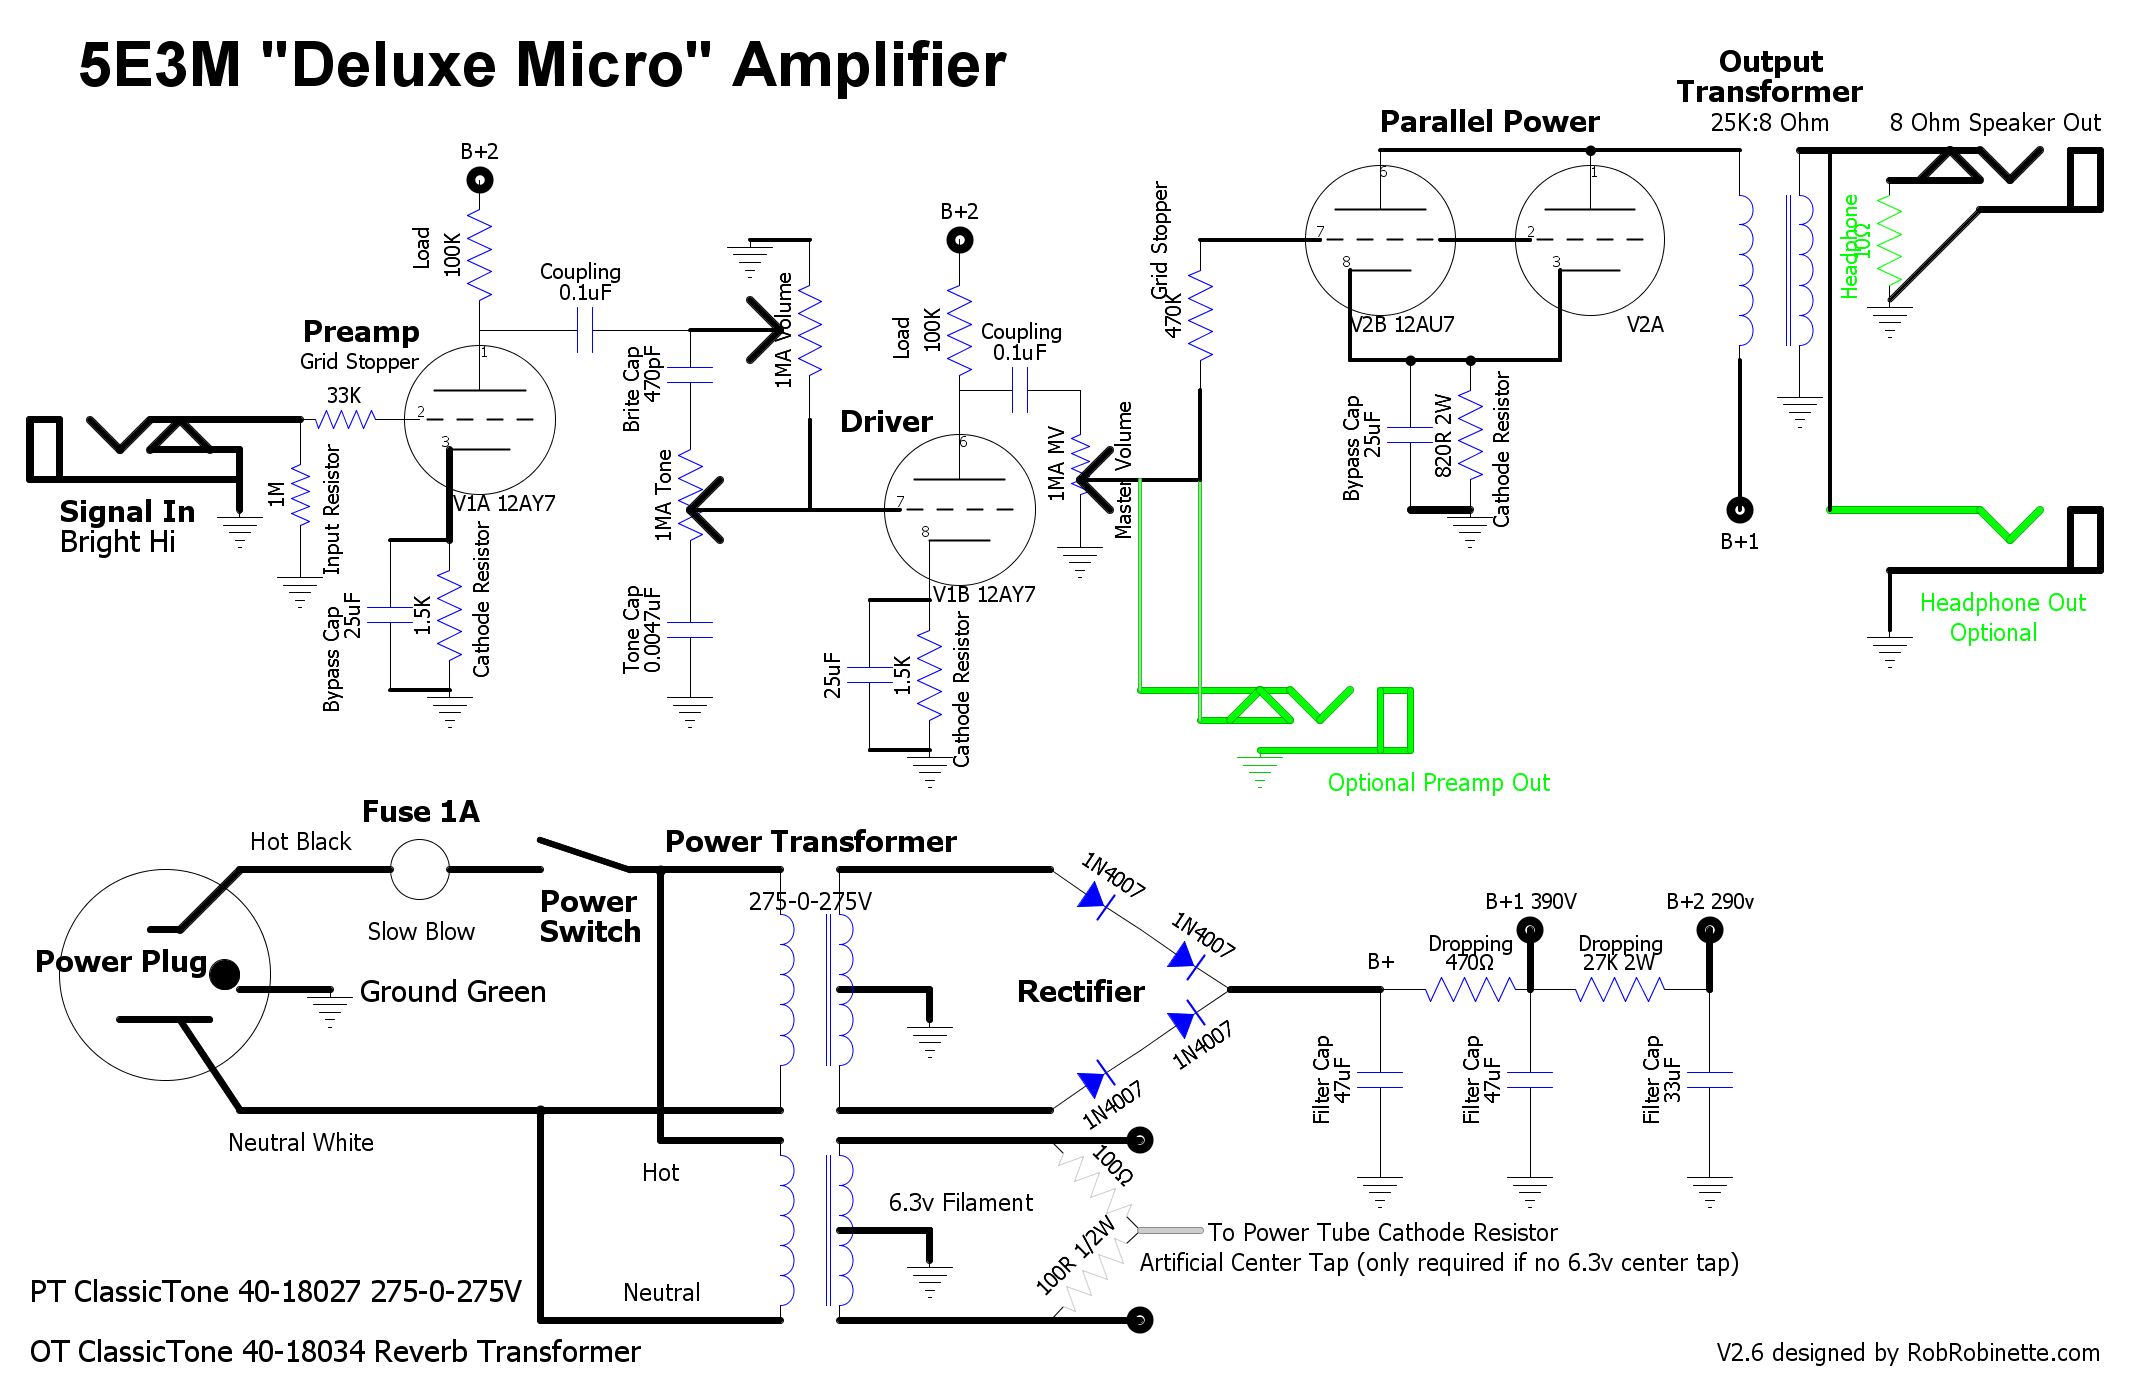 Deluxe Micro Transformer Circuit Tube Lifier Atx Power Supply Schematic Layouts Below Show Optional Ez81 Rectifier If You Prefer An All Amplifier Click On The Image To See A Hi Res Pdf Of